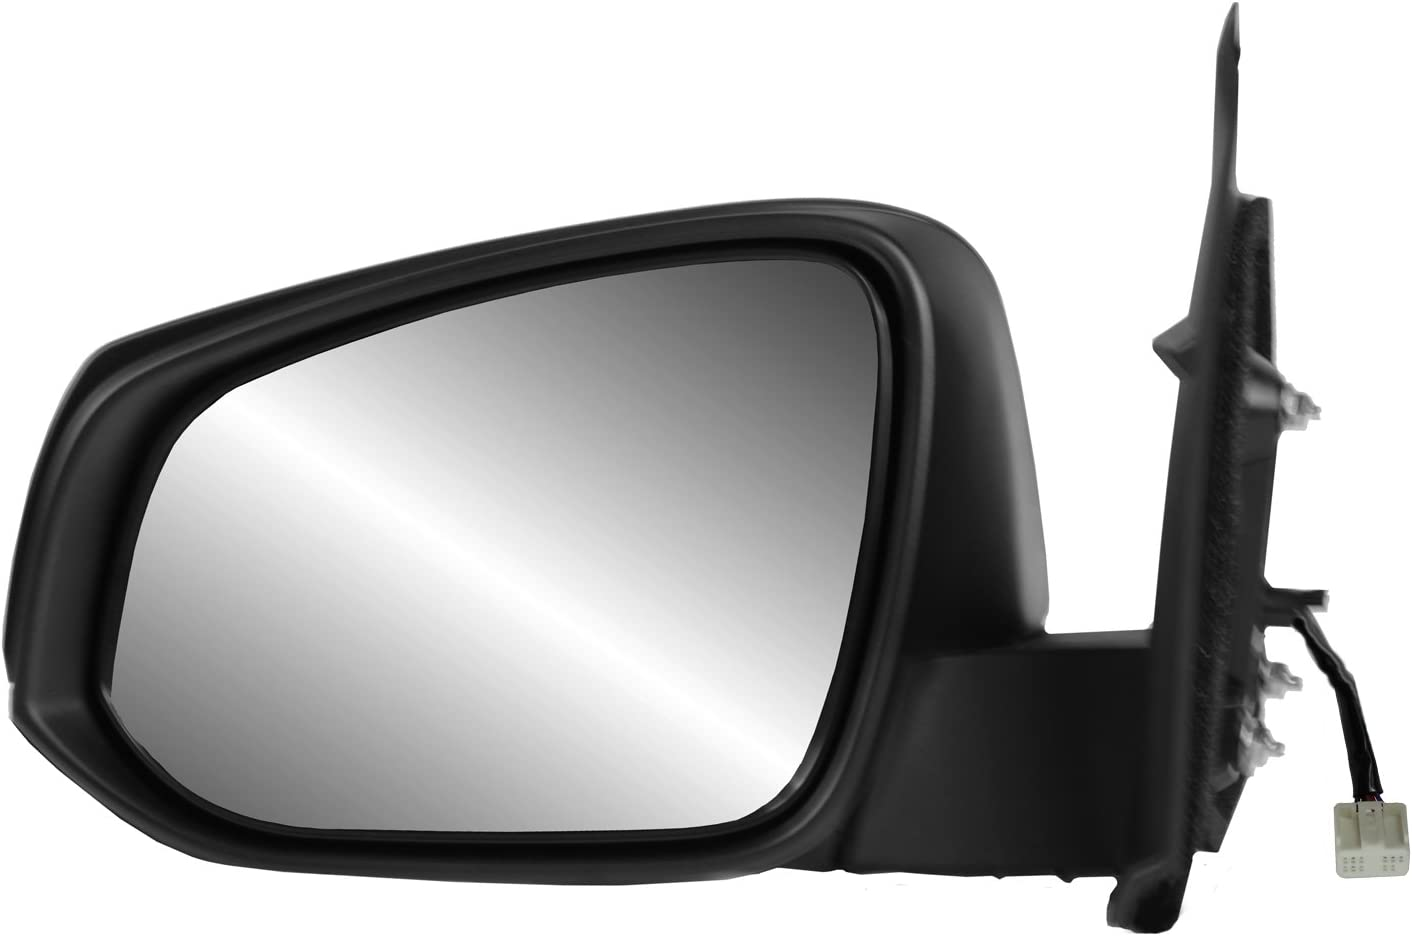 Heated Power w//o spot Mirror Driver Side Mirror for Toyota Tacoma Textured Black w//o Puddle lamp w//o Blind spot Detection System Foldaway